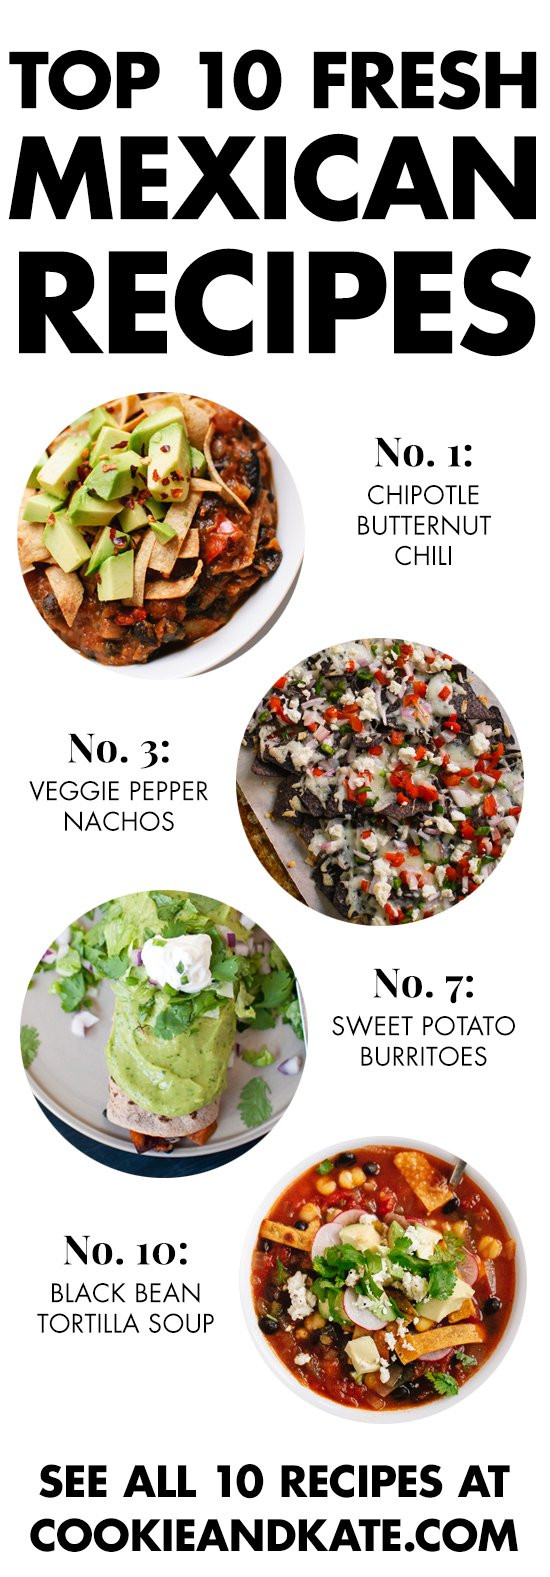 Best Vegetarian Mexican Recipes  Top 10 Ve arian Mexican Recipes Cookie and Kate